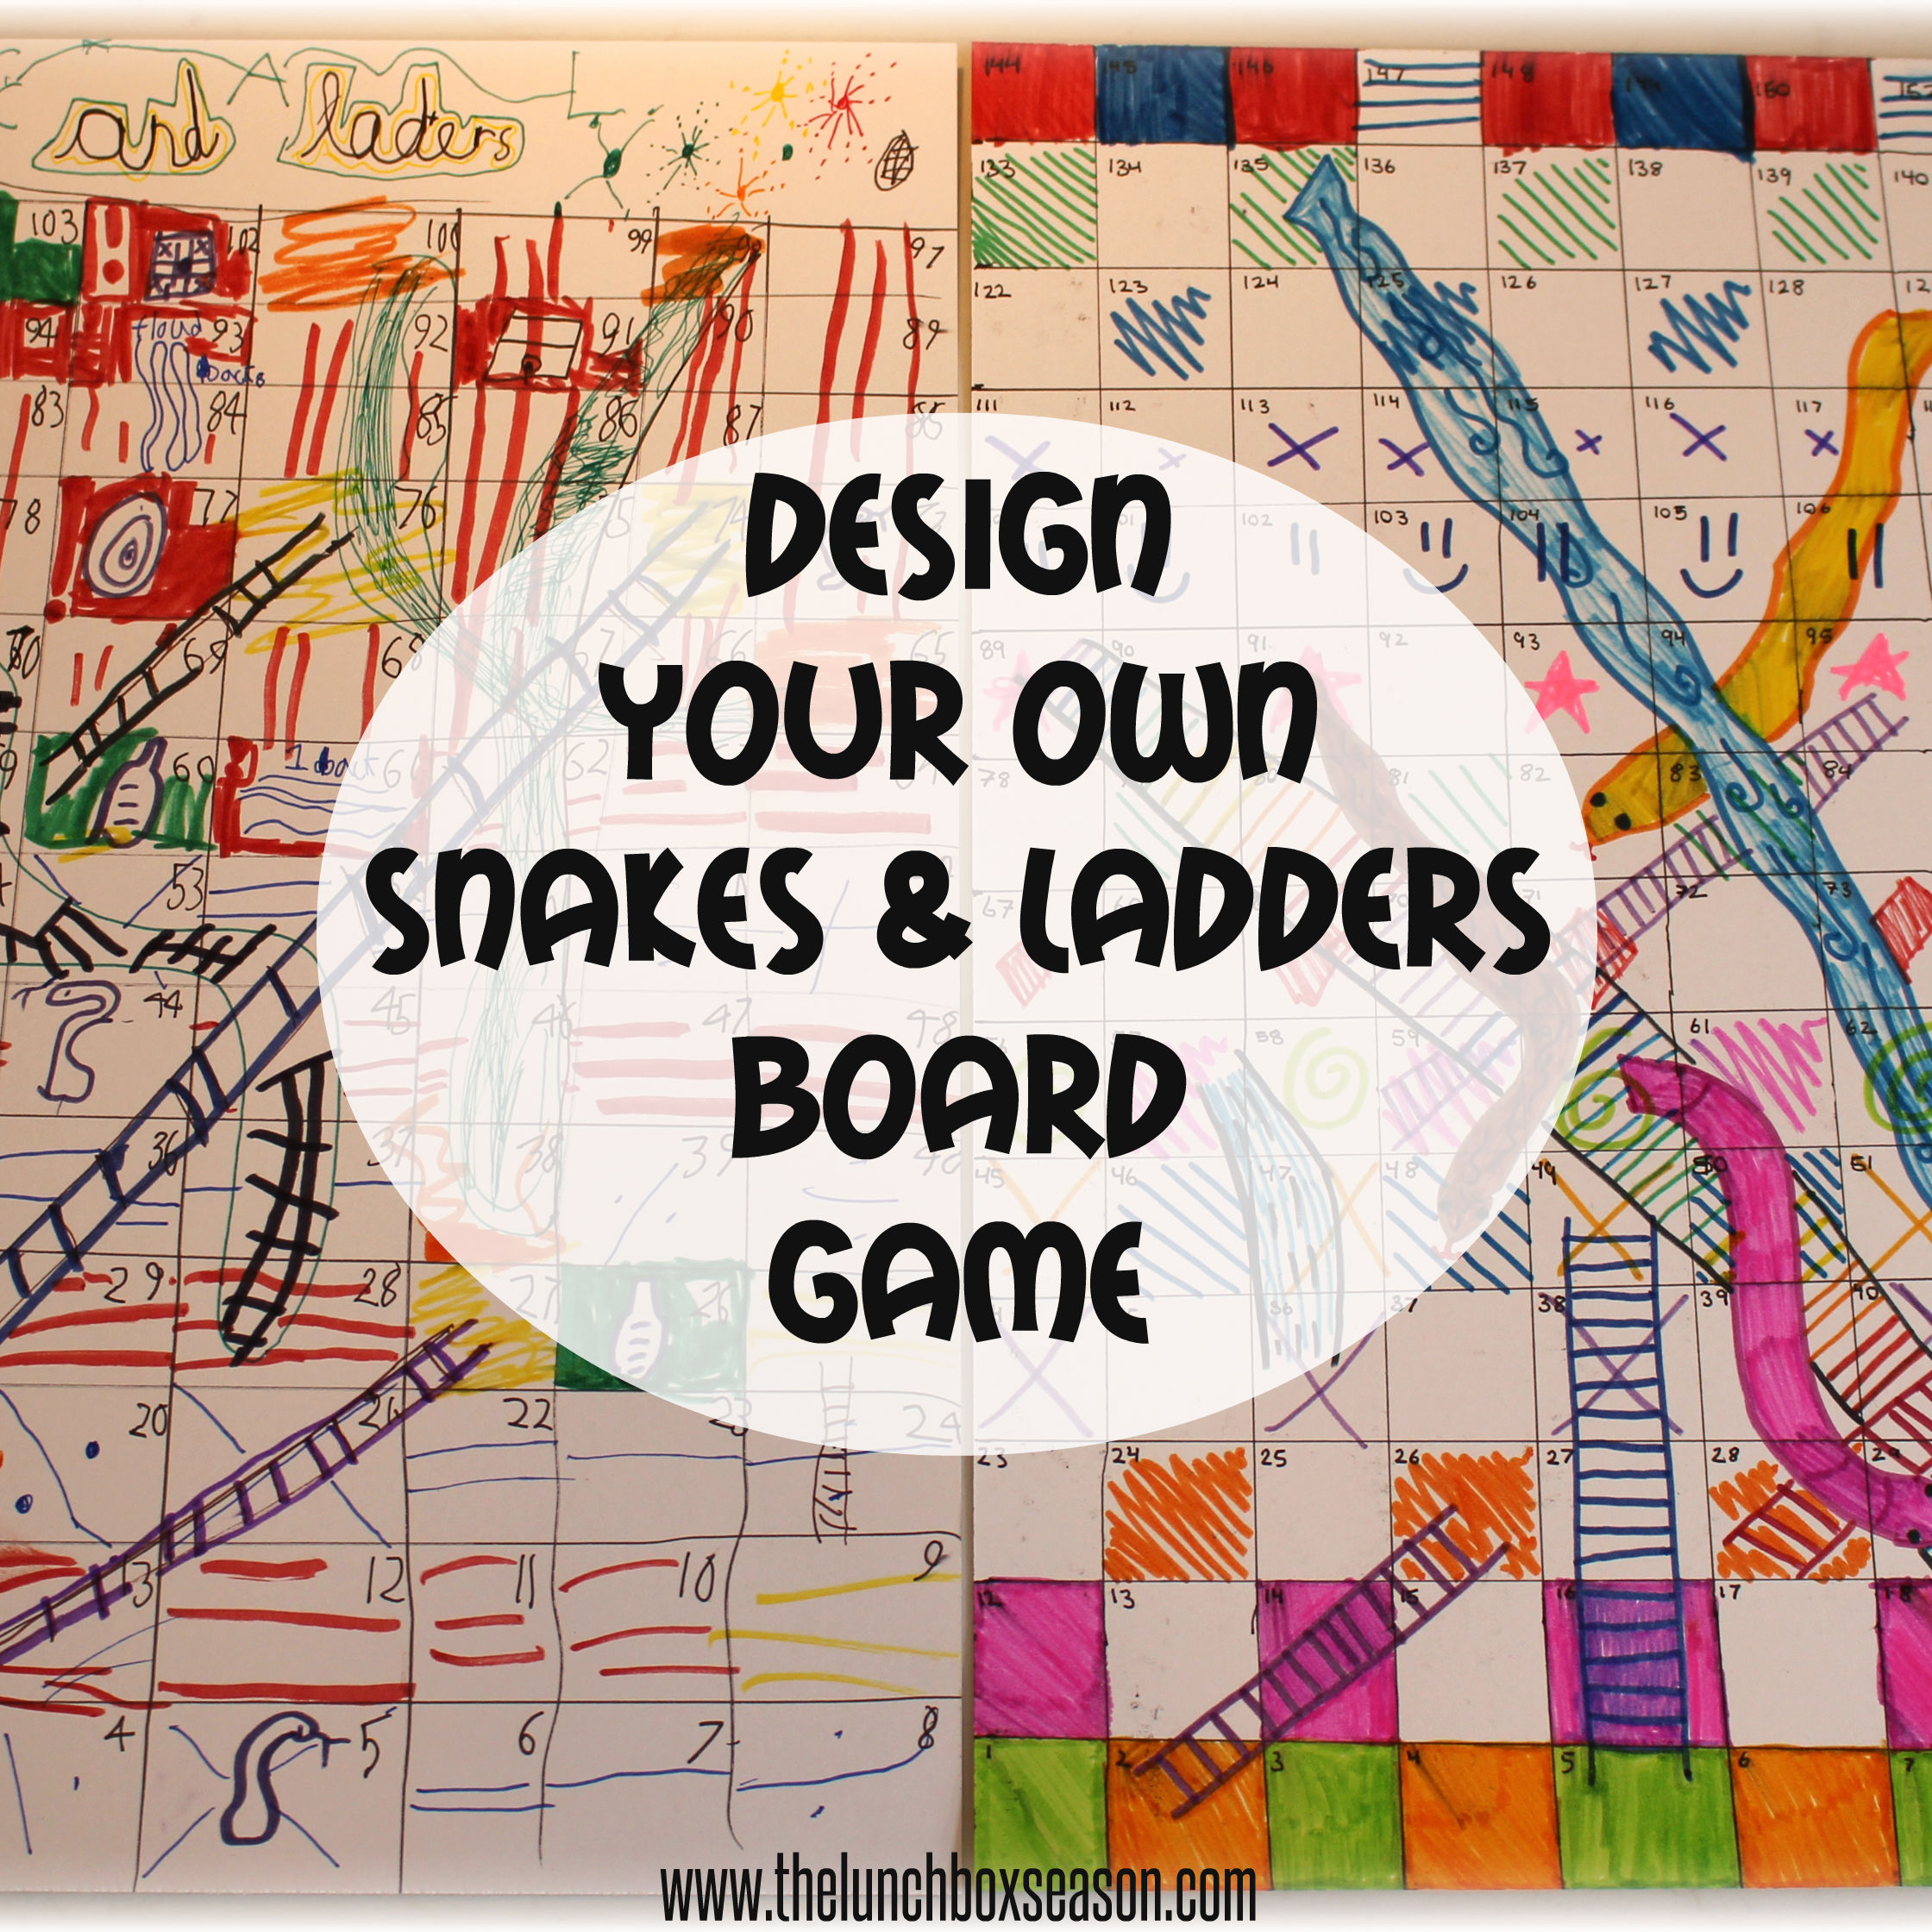 March breack 2014 design your own snakes and ladders for Chutes and ladders board game template